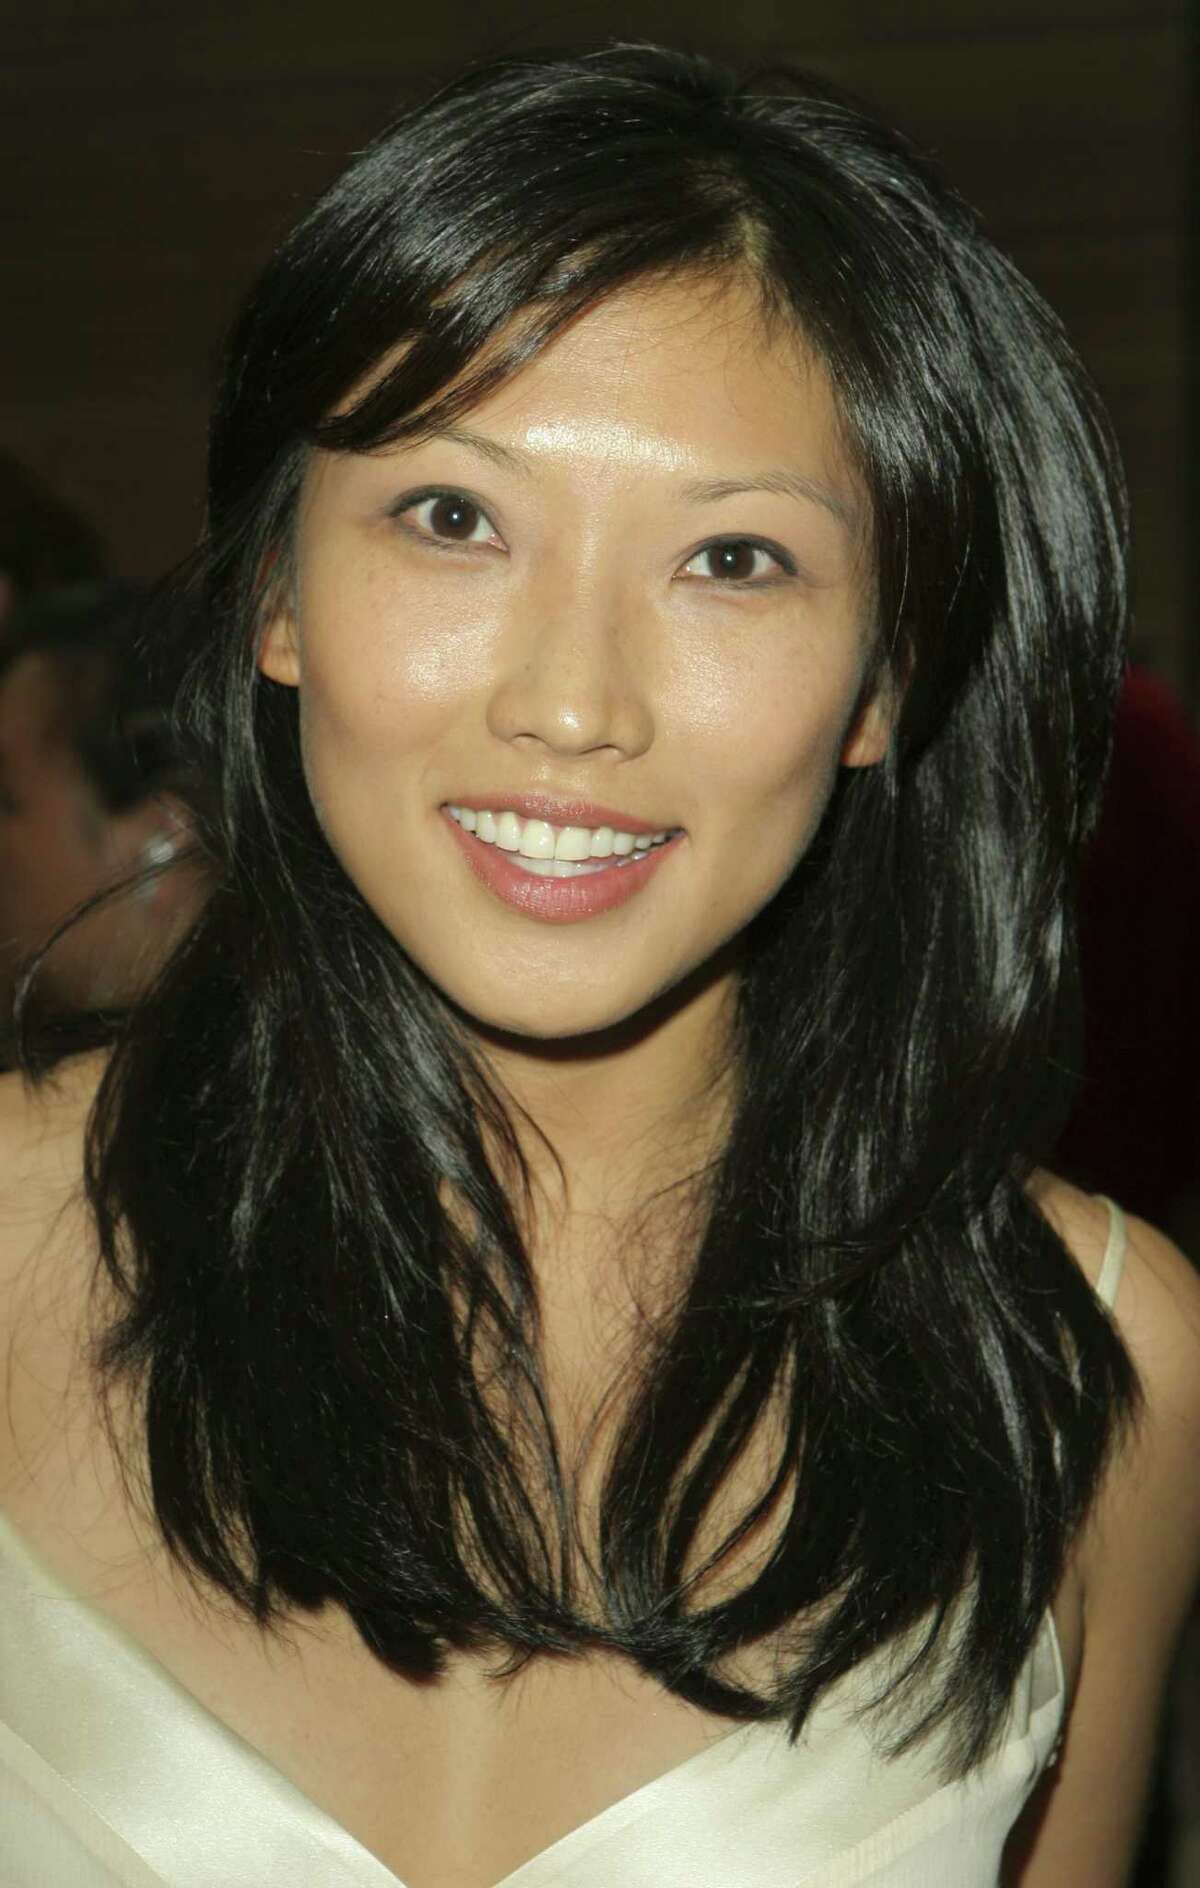 Janet Choi came from Chicago and was a journalism and international studies student. Did she become the investigative journalist she wanted to be?